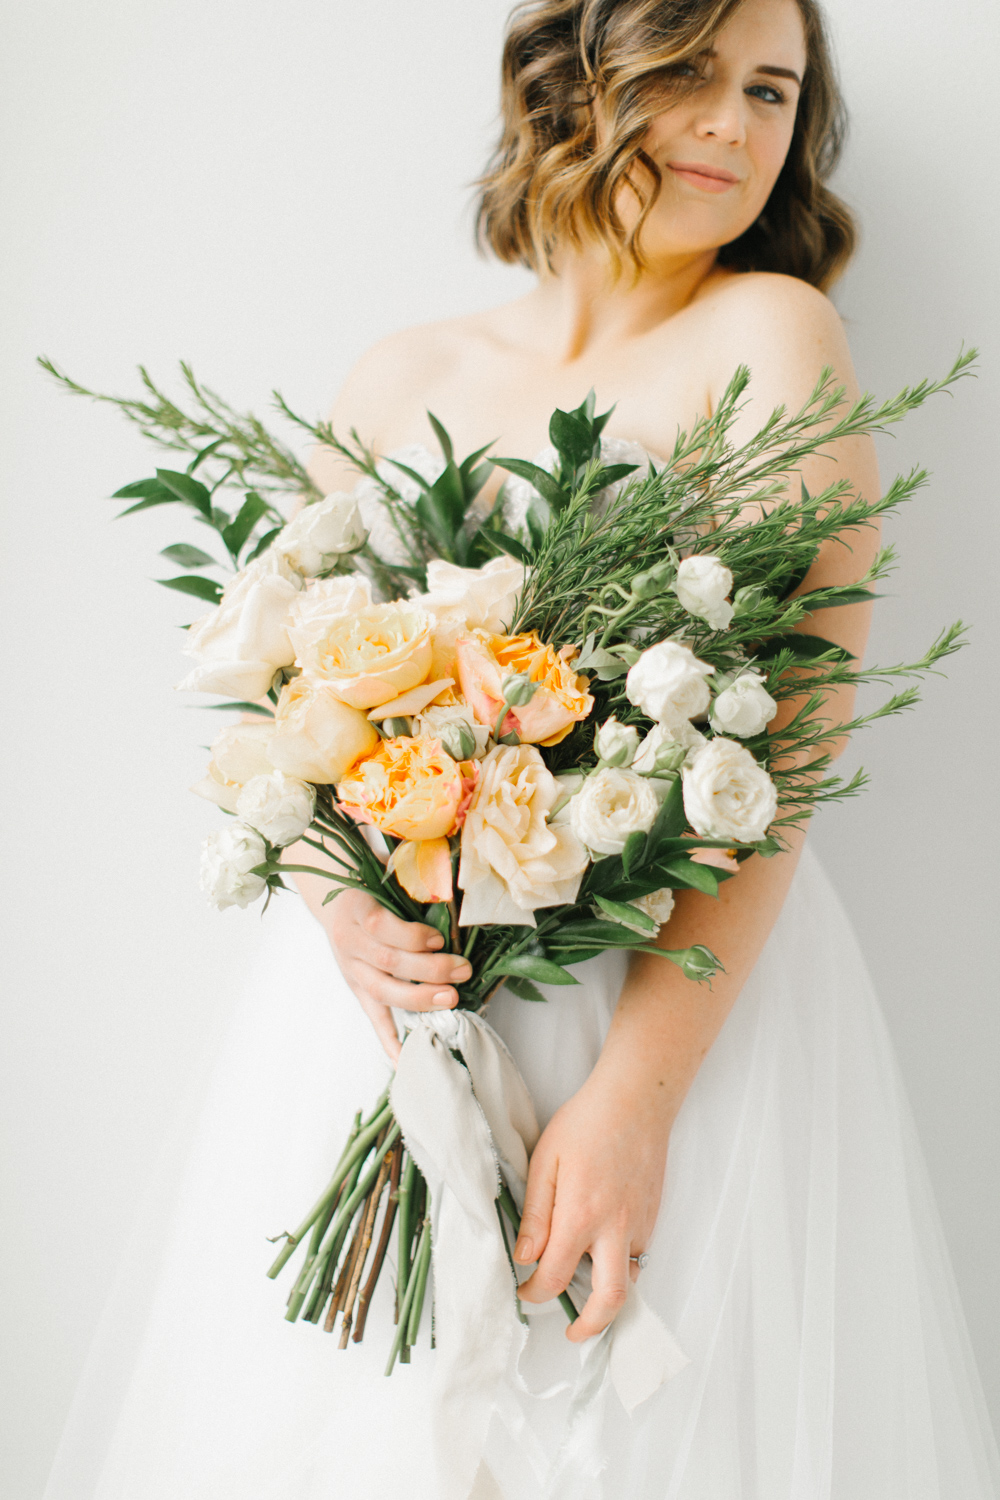 Seattle Fine Art Wedding Photographer | Seattle Downtown White Studio Bridal Session | Stunning Wedding Bouquet | Seattle Bride | Seattle Wedding | Photography Studio Space | Emma Rose Company Wedding Photography-19.jpg